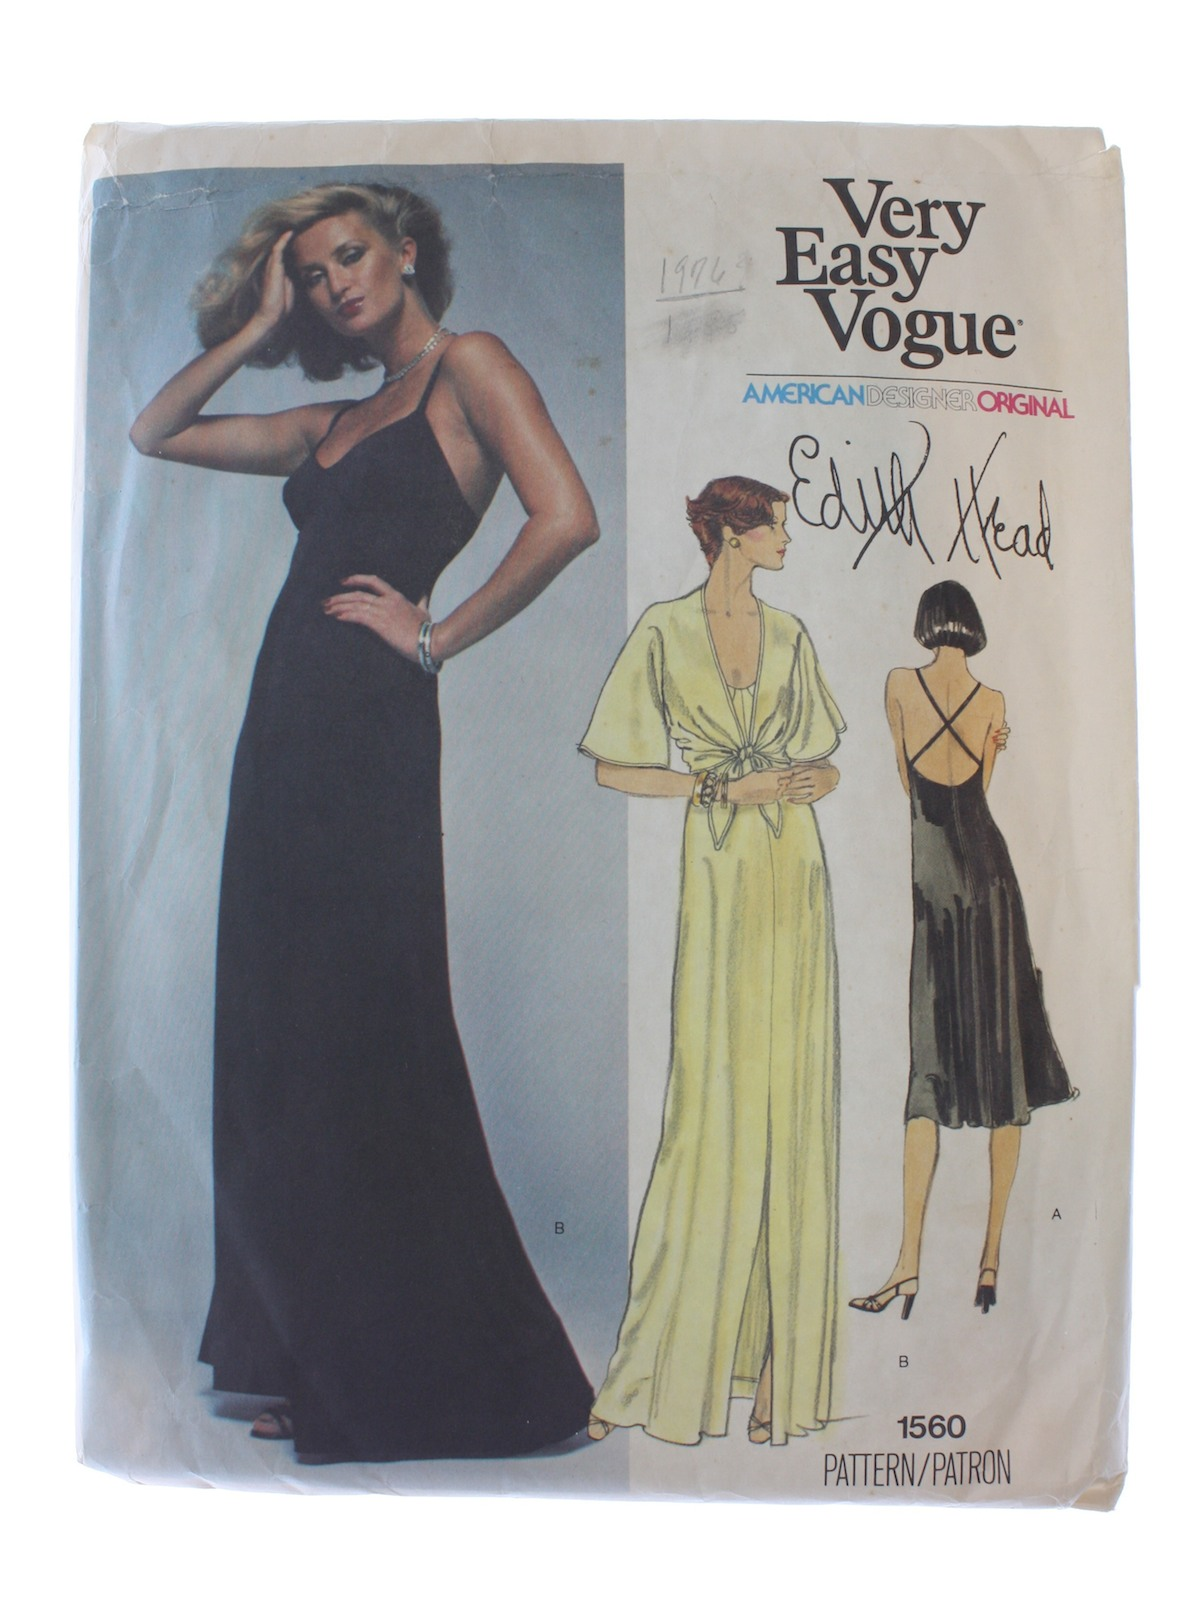 700f6c84687 80s Vintage Vogue Pattern No. 1560 Sewing Pattern  c. 1984 -Vogue ...